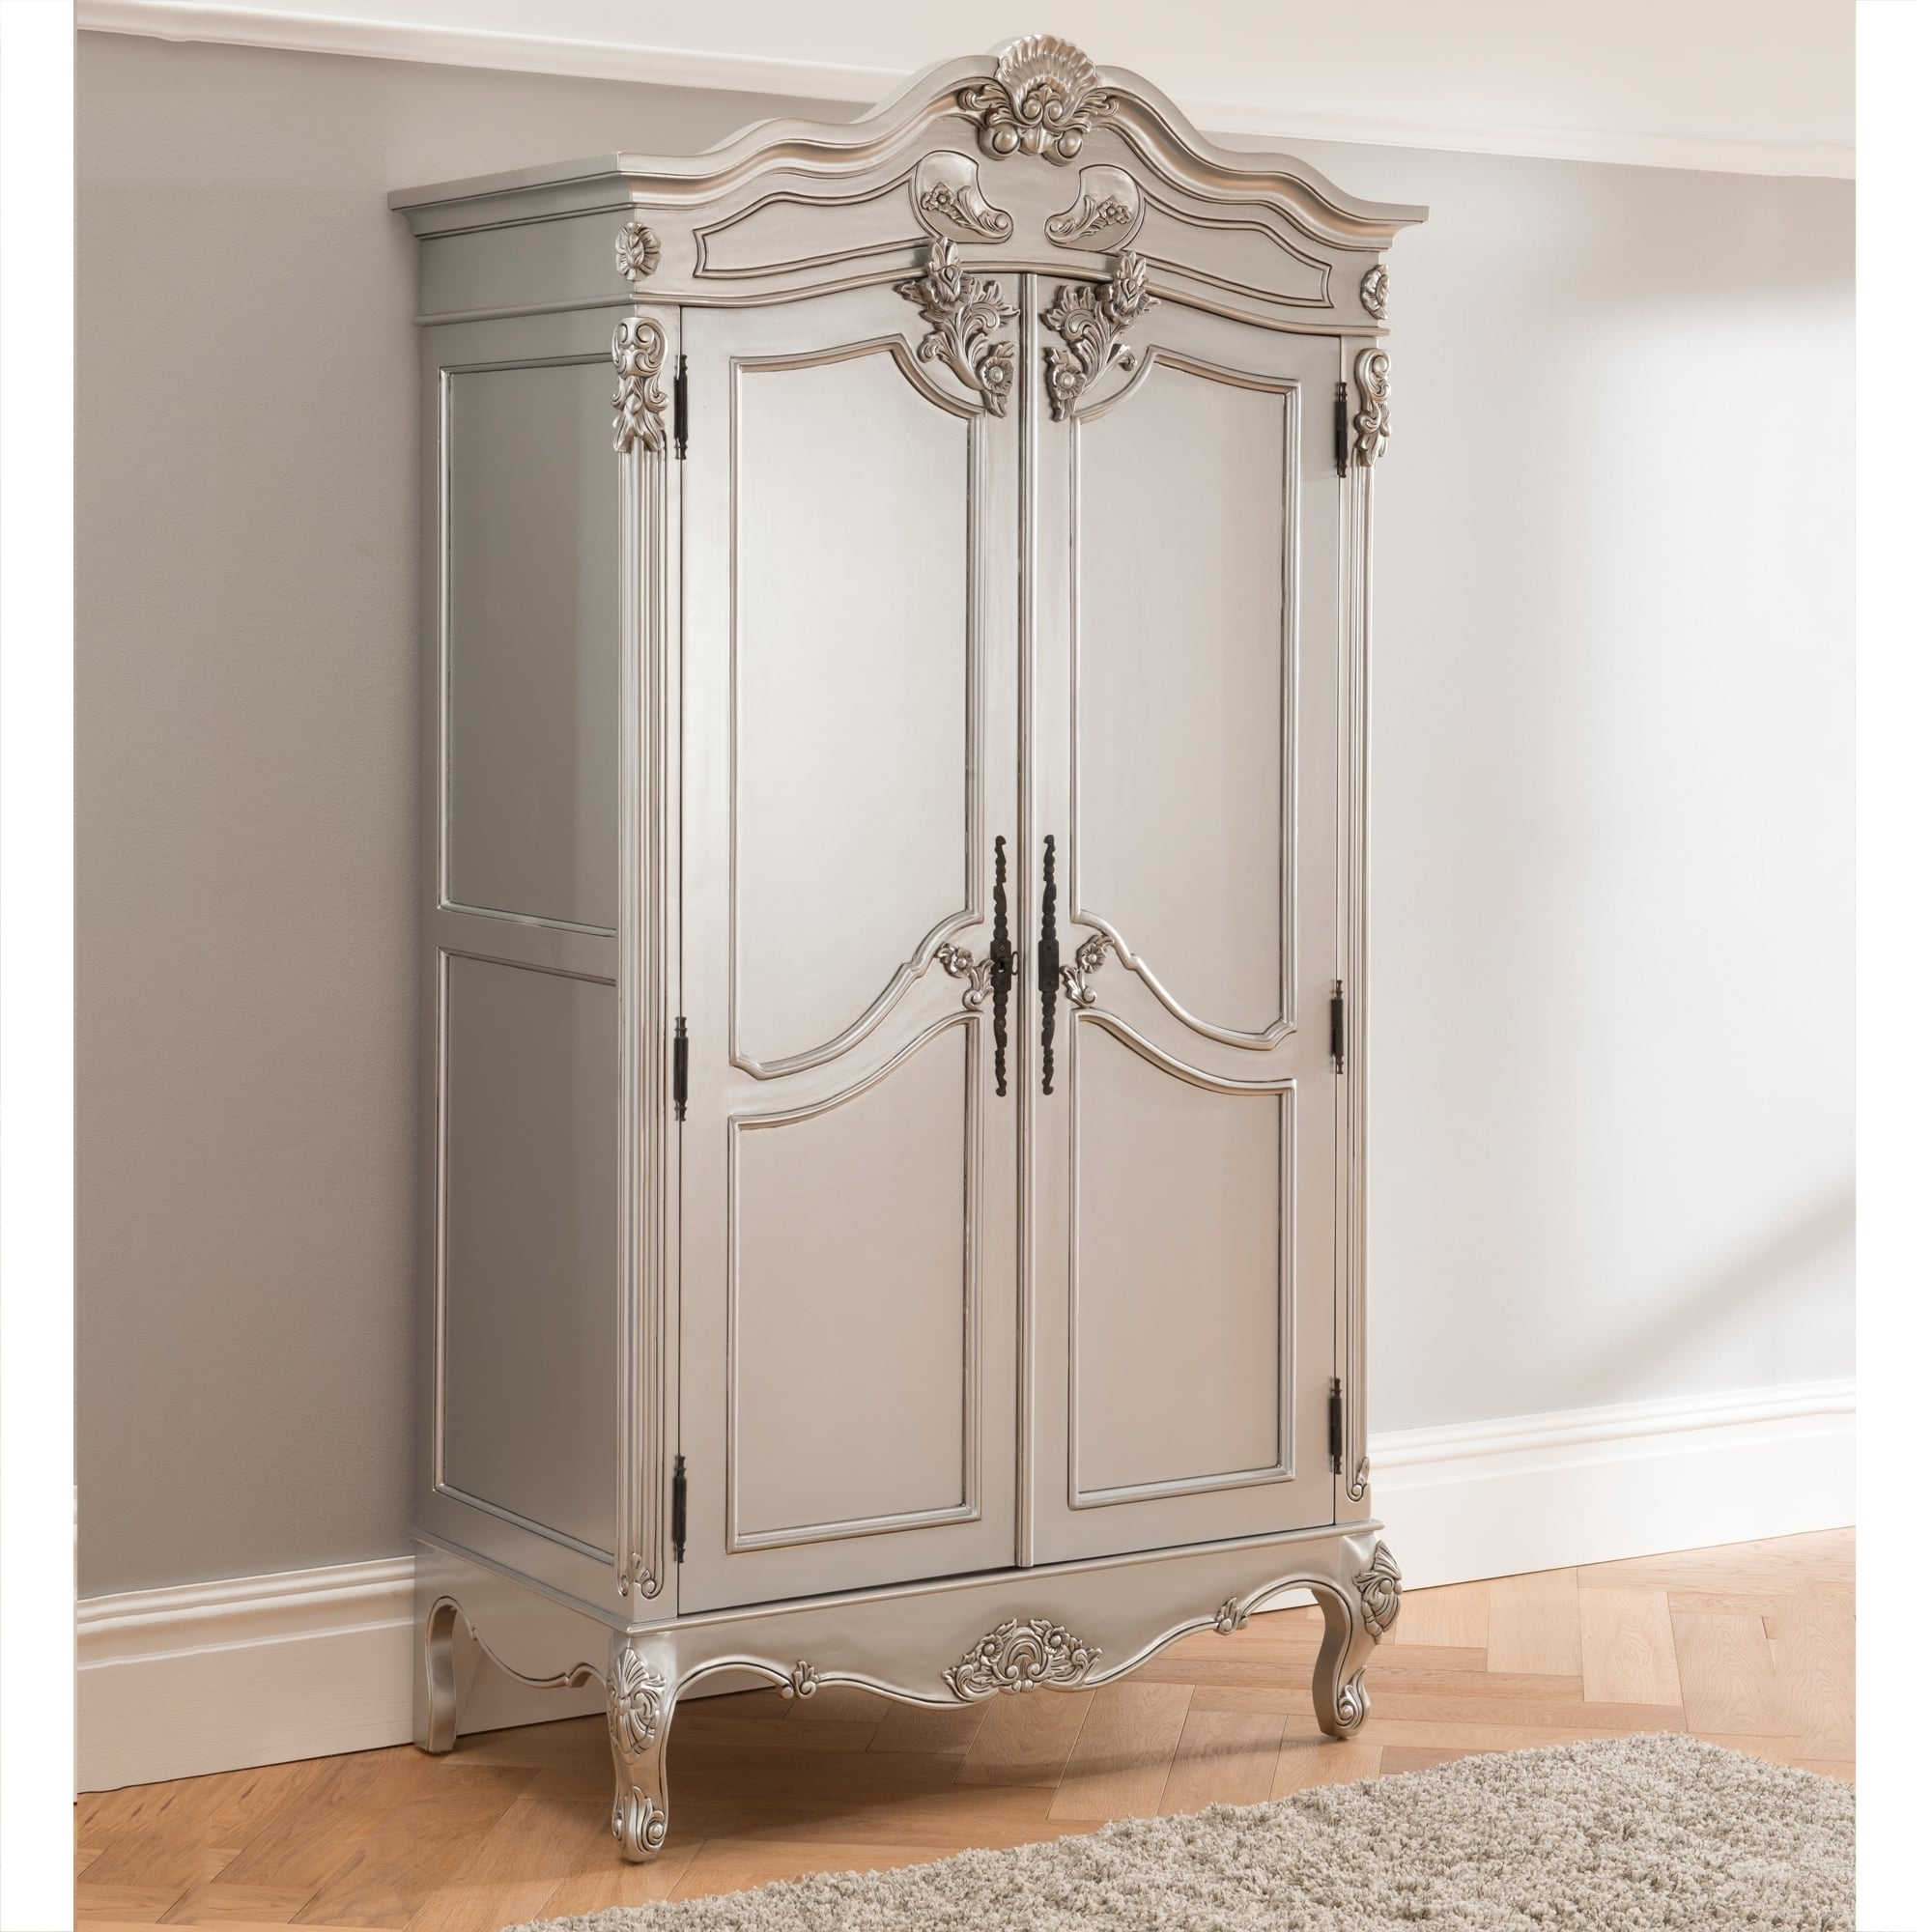 Most Popular Home Design : Graceful French Shabby Chic Wardrobes Vintage For Vintage Style Wardrobes (View 14 of 15)